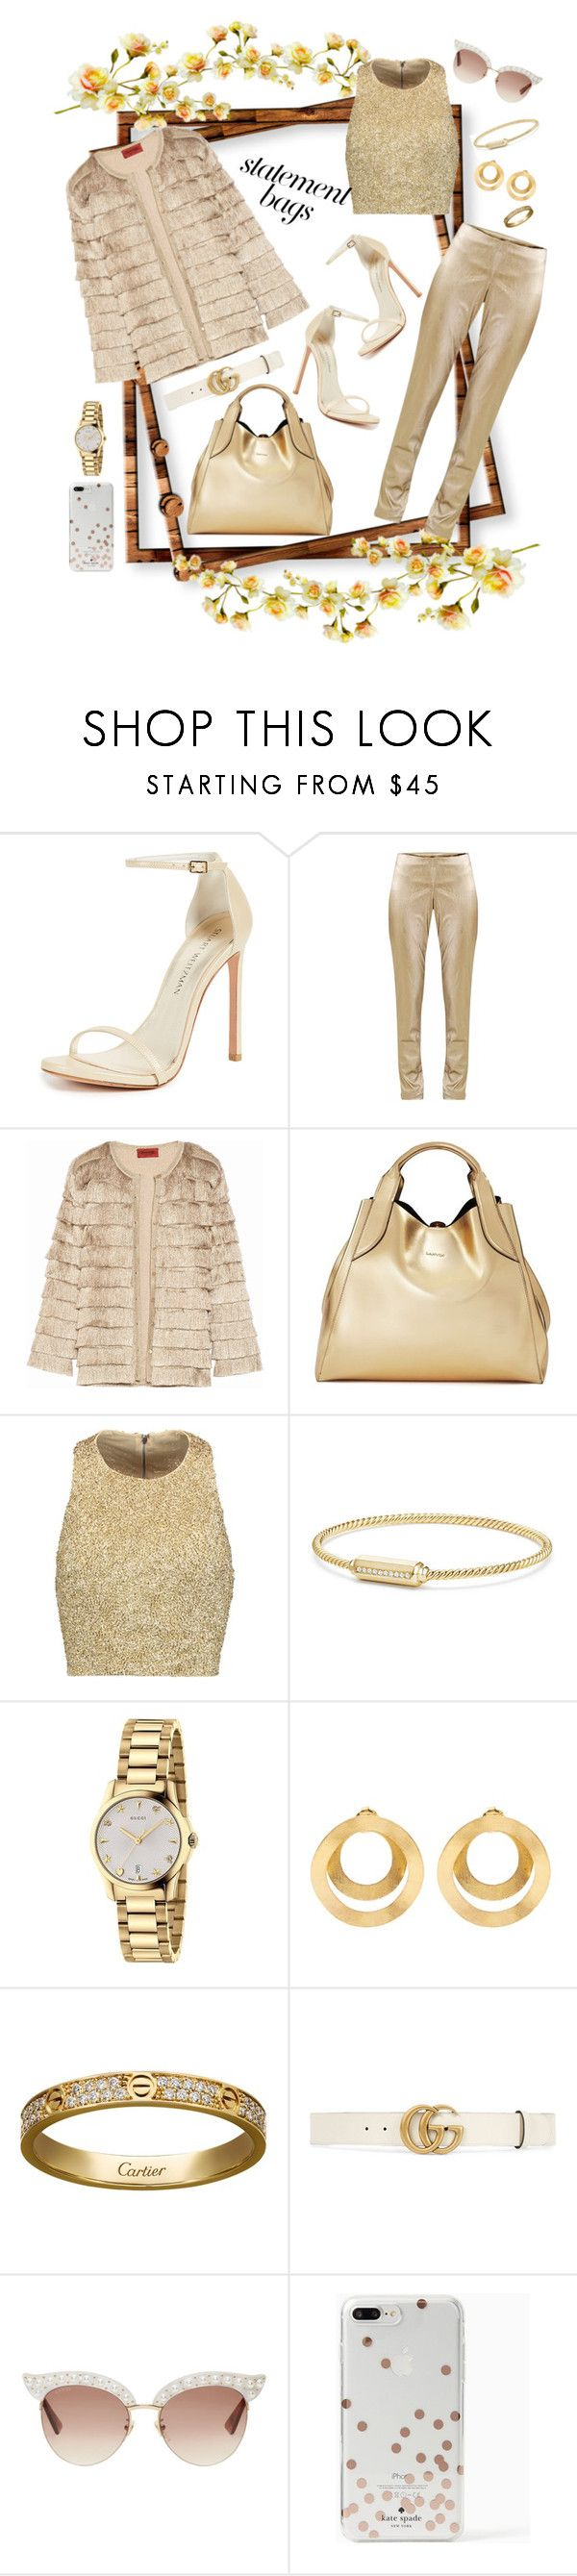 """""""StatementBags;love&gold"""" by verlacomplacencia ❤ liked on Polyvore featuring Stuart Weitzman, SEMICOUTURE, Missoni, Lanvin, Alice + Olivia, David Yurman, Gucci, Anissa Kermiche, Cartier and Kate Spade"""